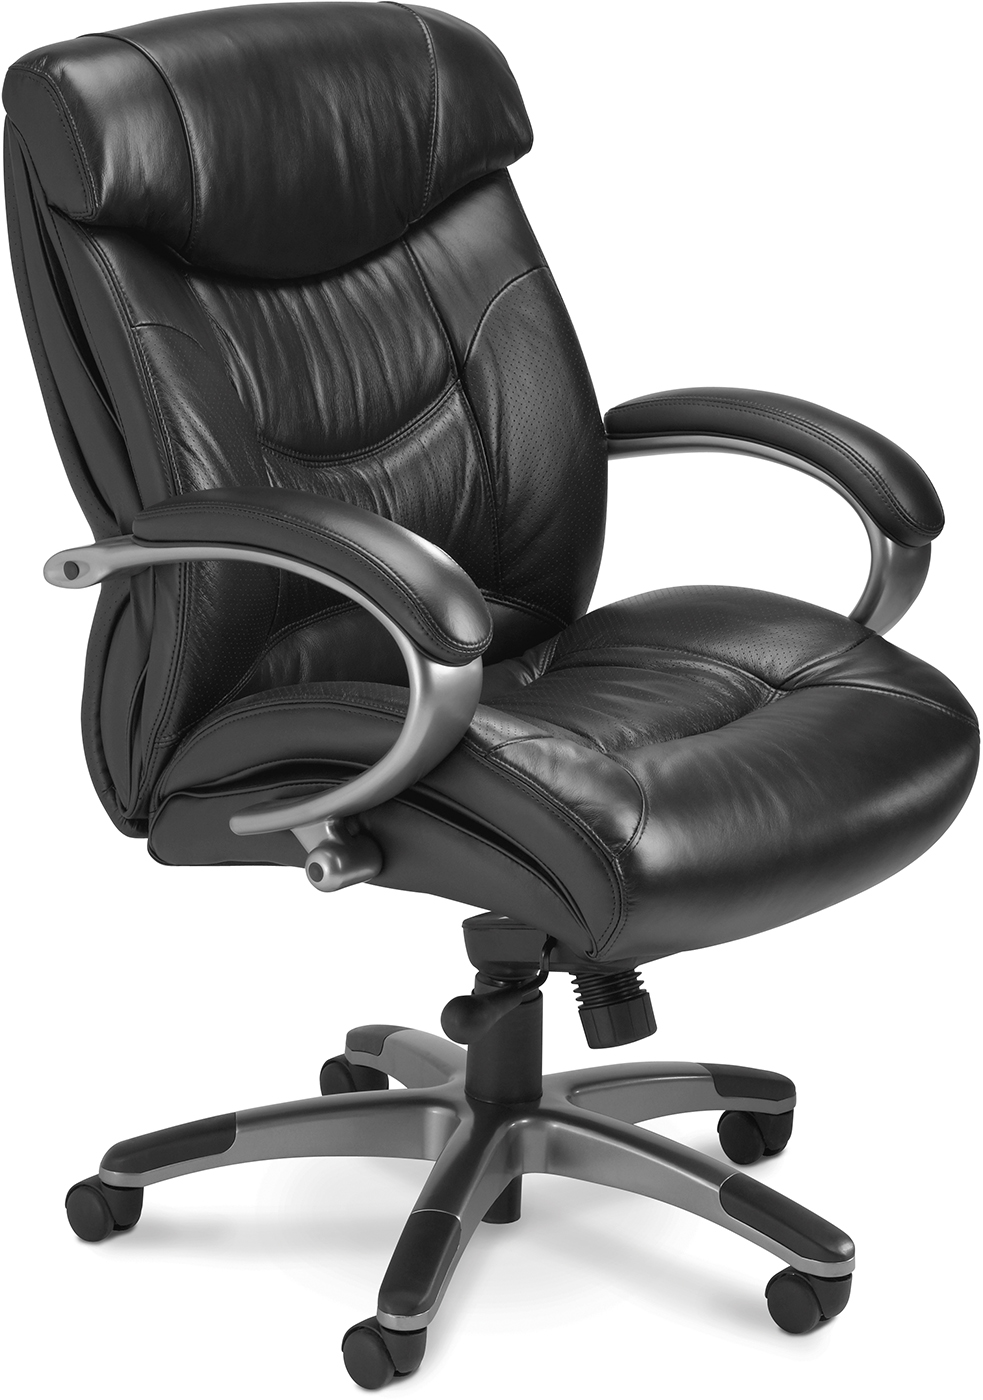 Prime Mayline Ultimo Executive Leather Office Chair Ul230M Interior Design Ideas Inesswwsoteloinfo